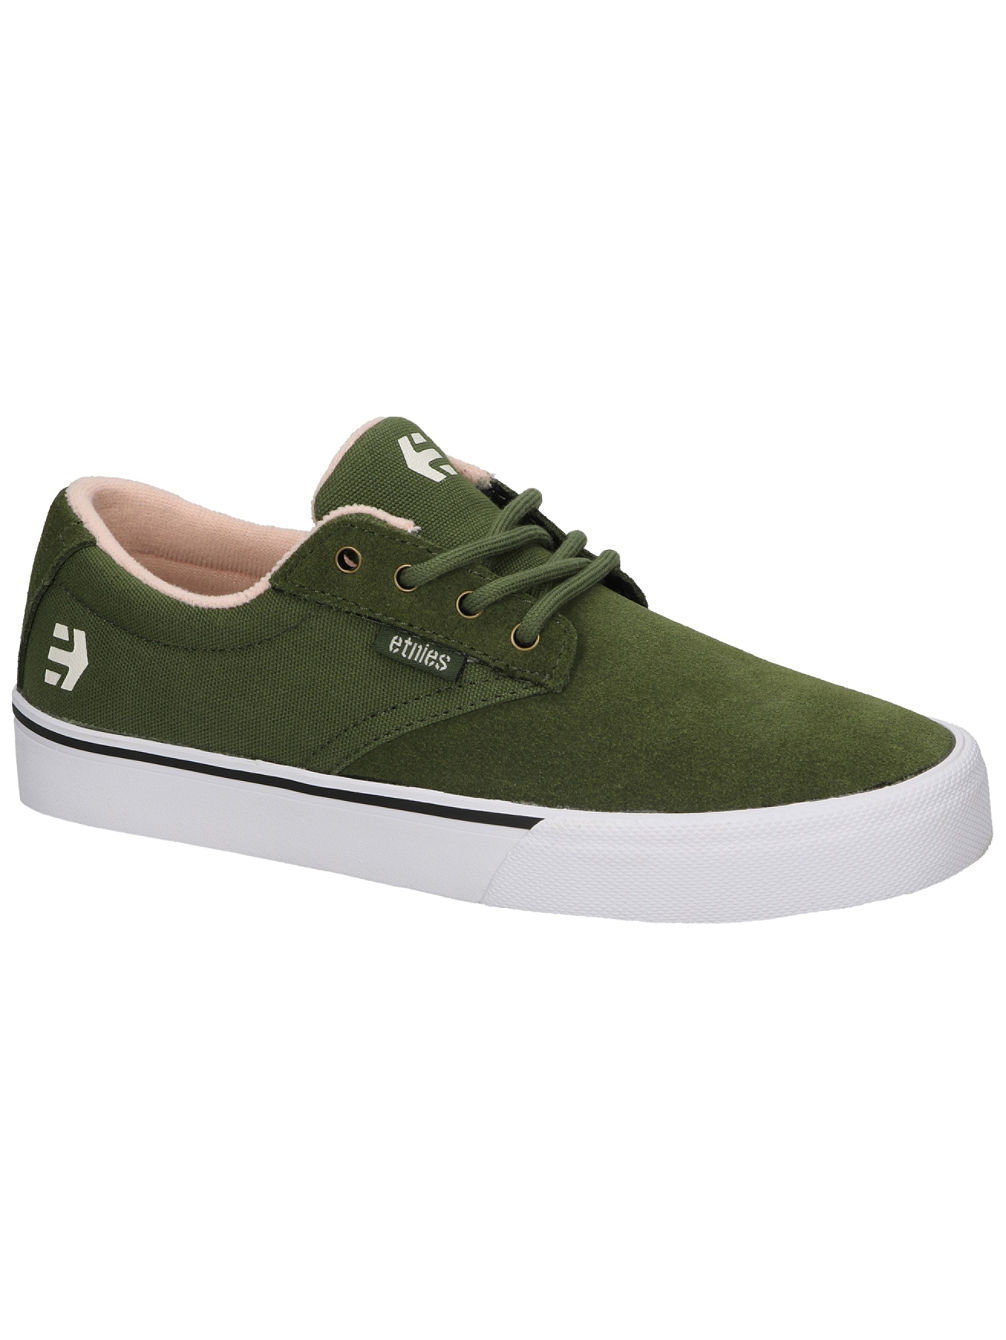 Jameson Vulc Sneakers Women